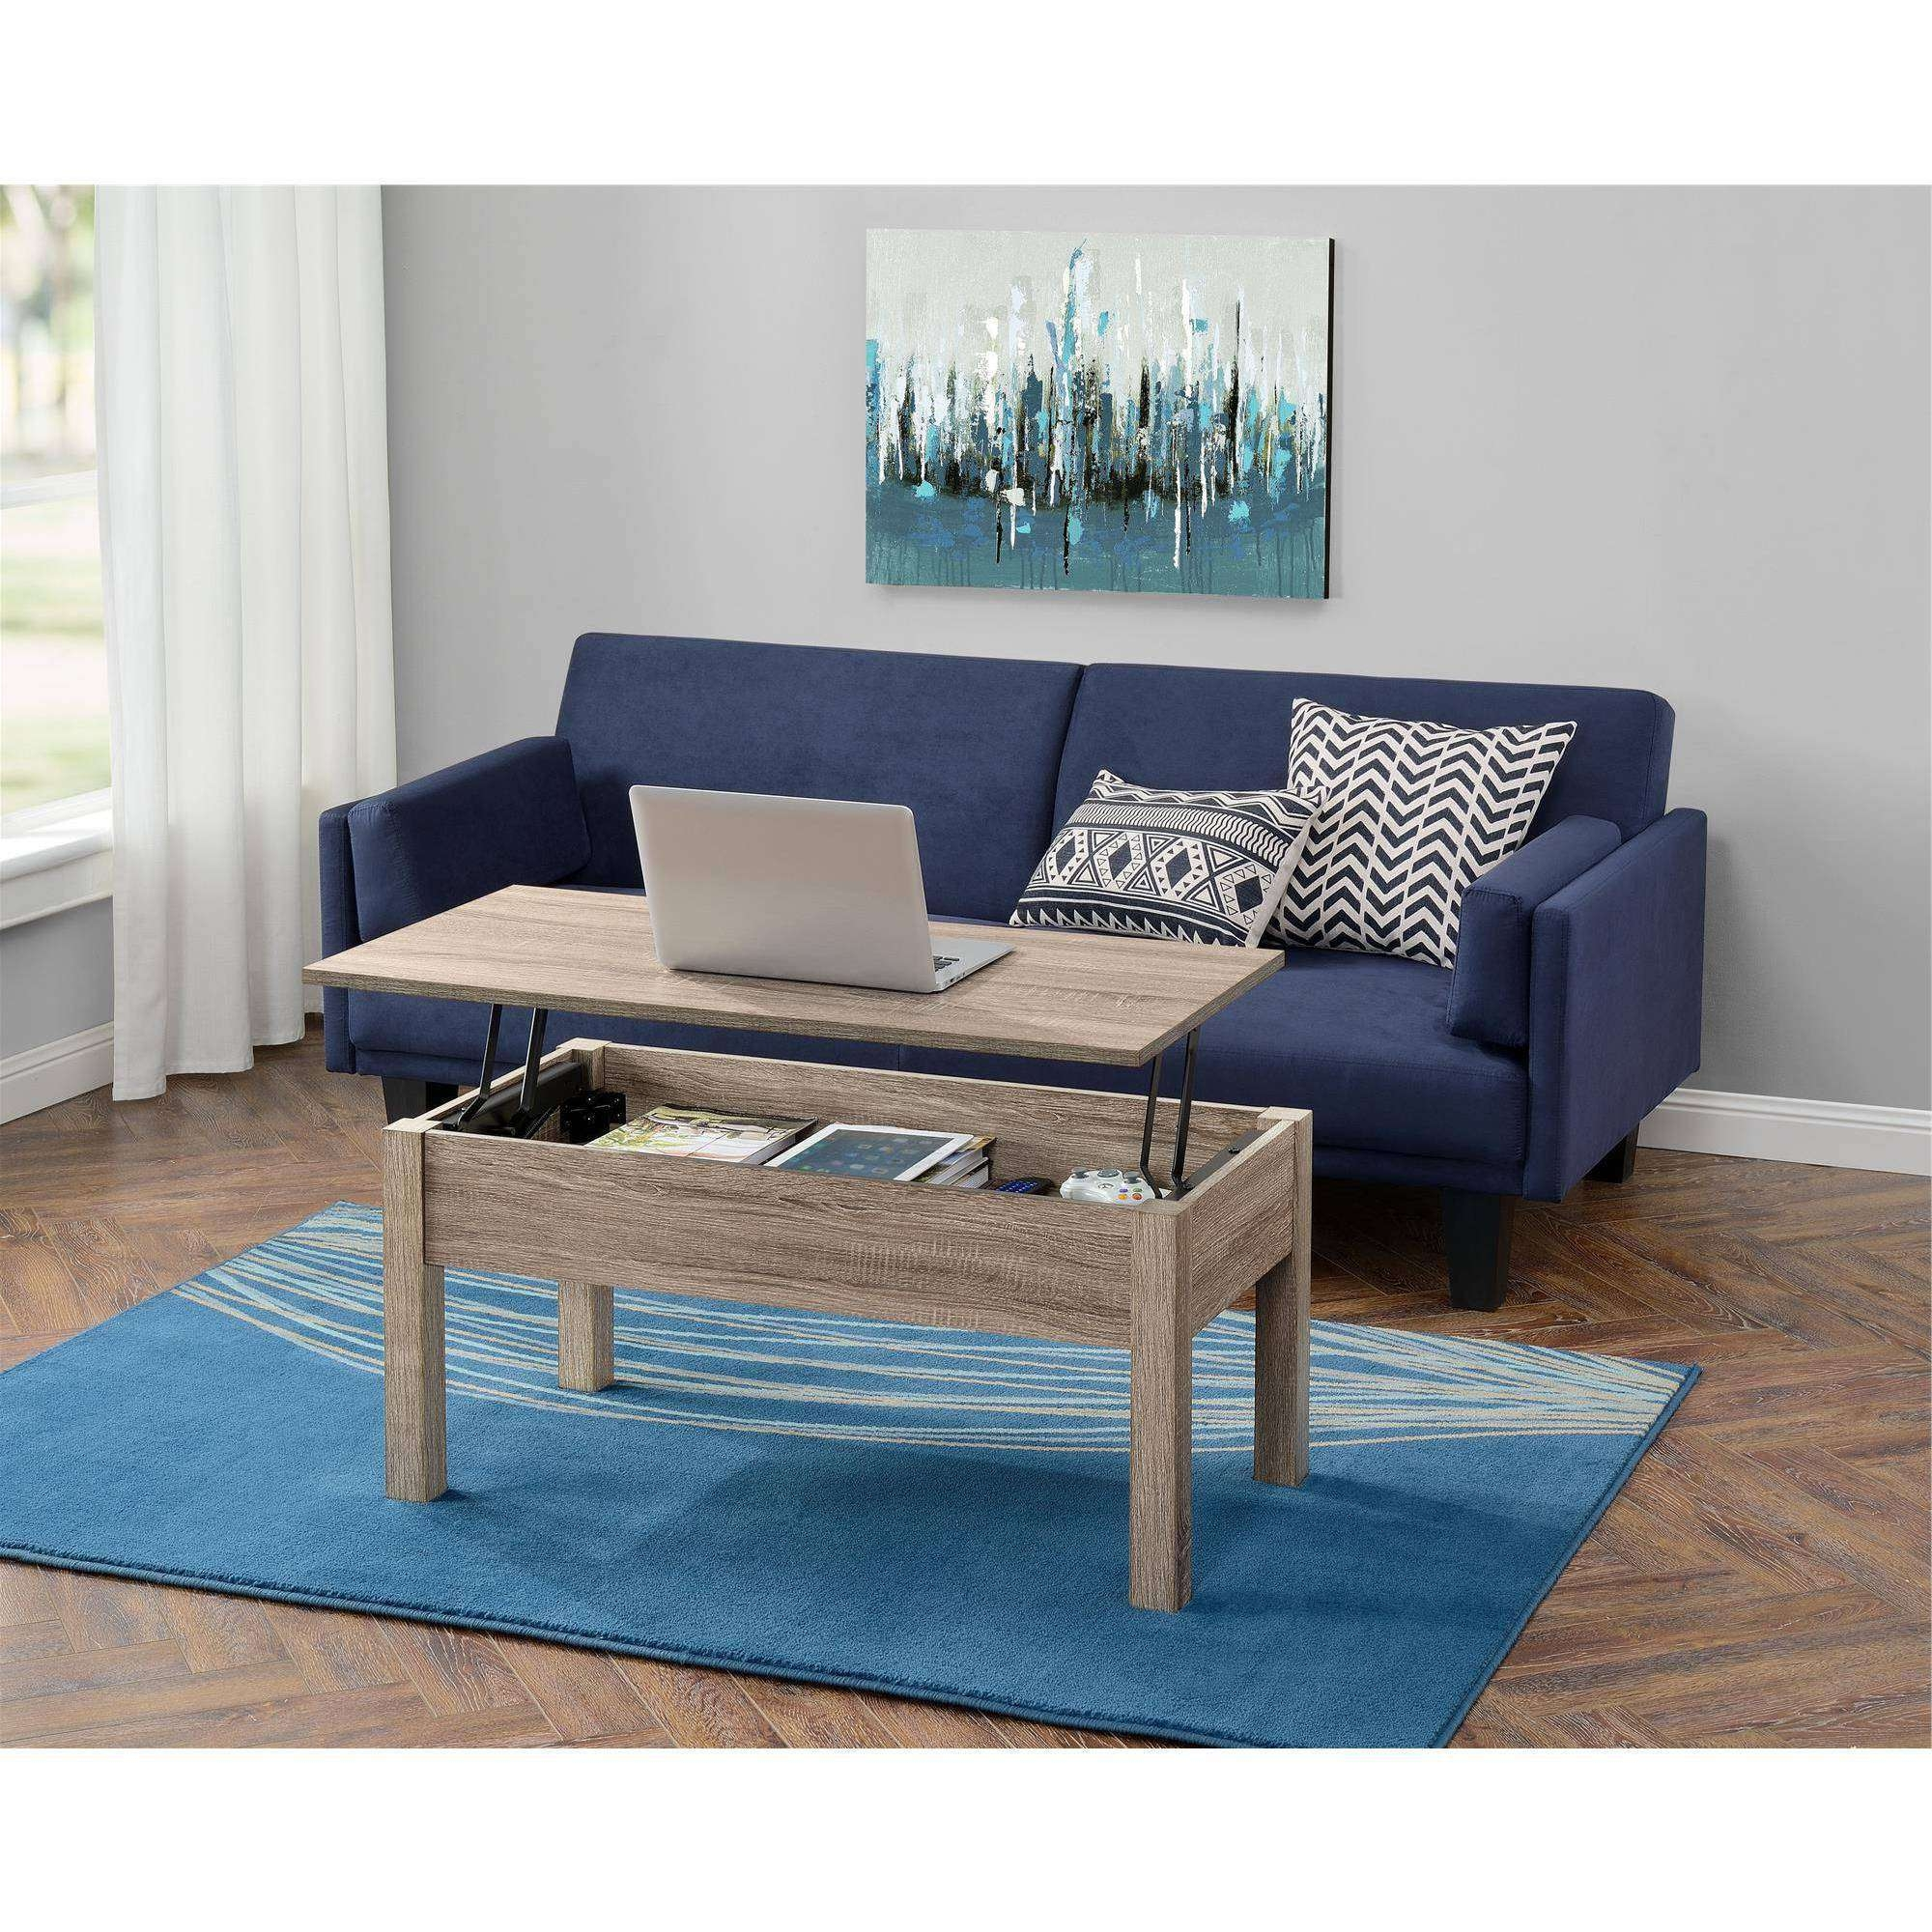 Well Known Pop Up Top Coffee Tables Inside Coffee Table Pop Up Top Design Ideas Tv / Thippo (View 19 of 20)